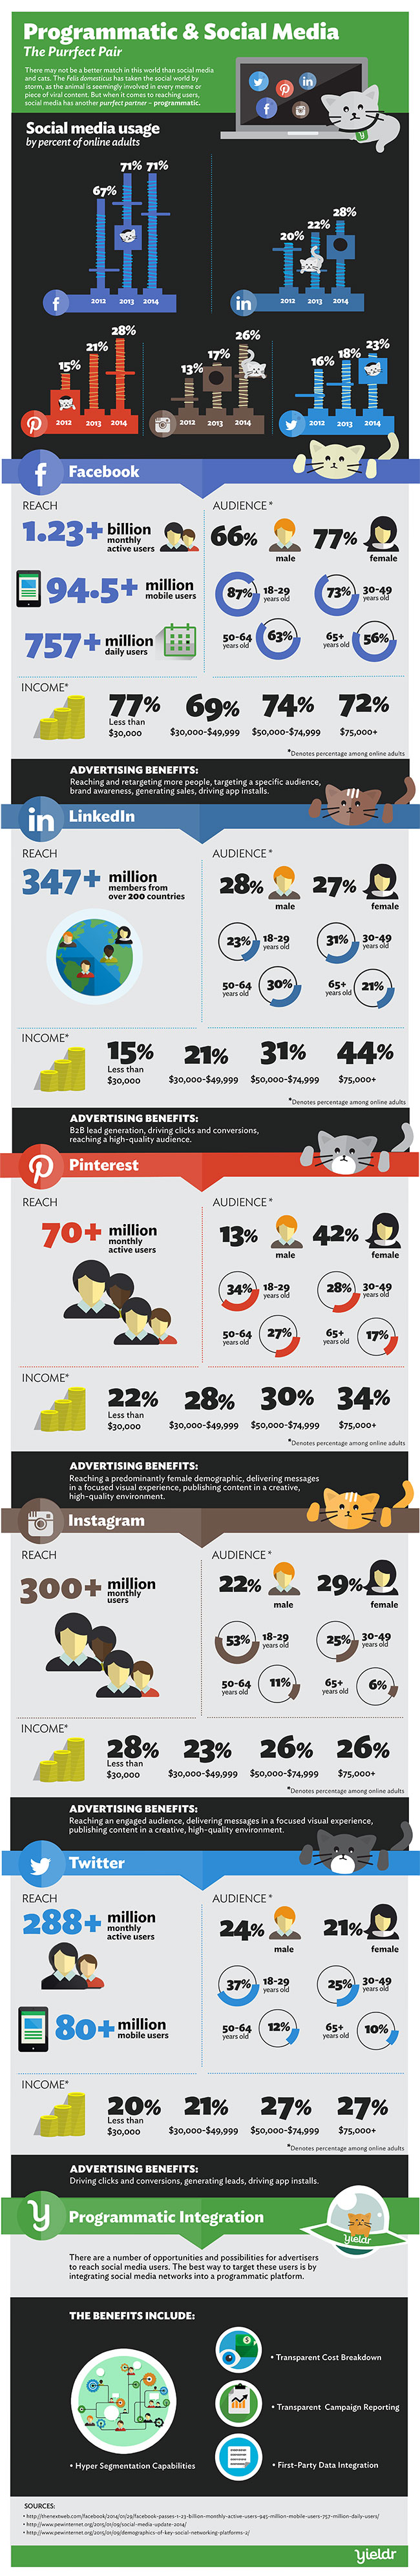 Programmatic-Social-Media-Infographic_650px